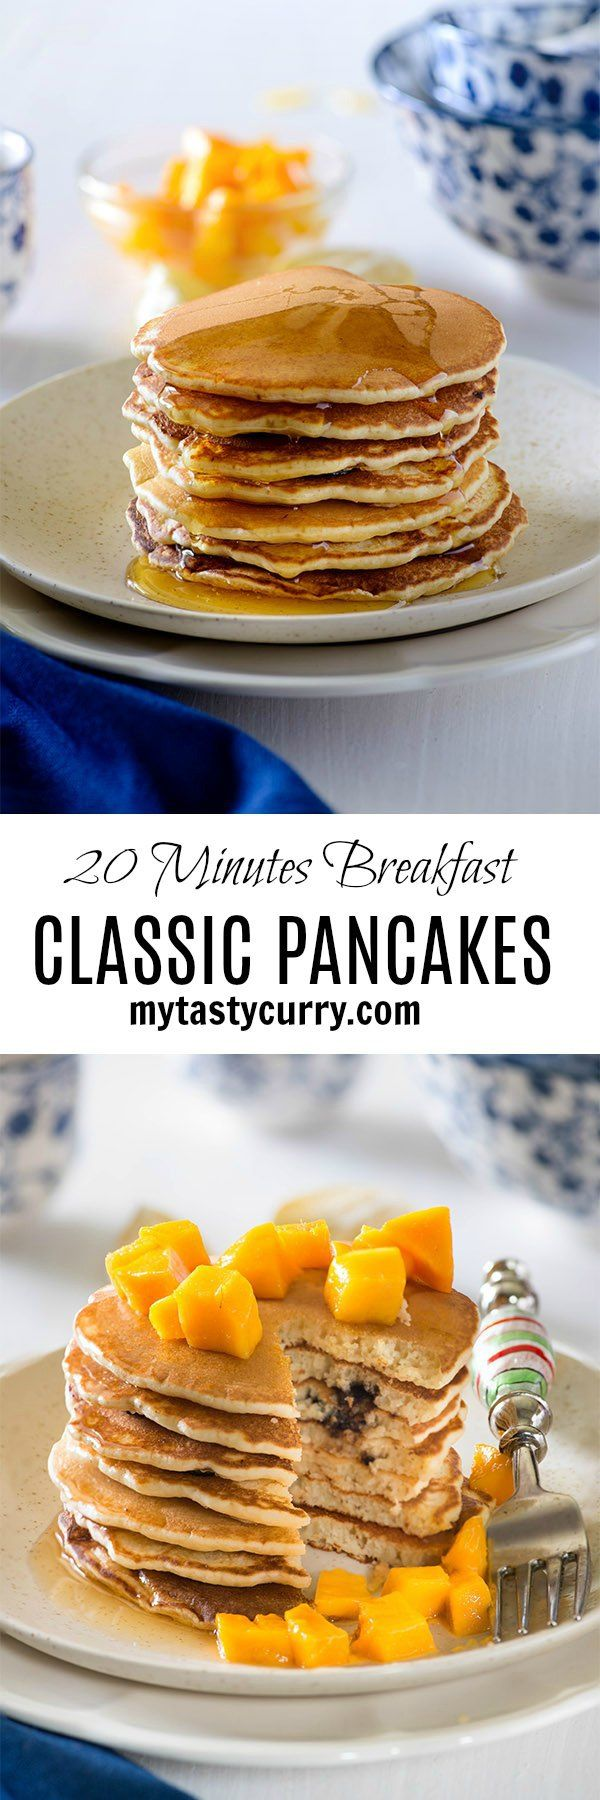 Fluffy pancake for breakfast in 20 minutes, an easy delicious homemade fluffy pancake recipe made with simple ingredients. Almost fail proof recipe of pancakes that gives perfect stack of pancakes if you follow the exact proportions of ingredients.